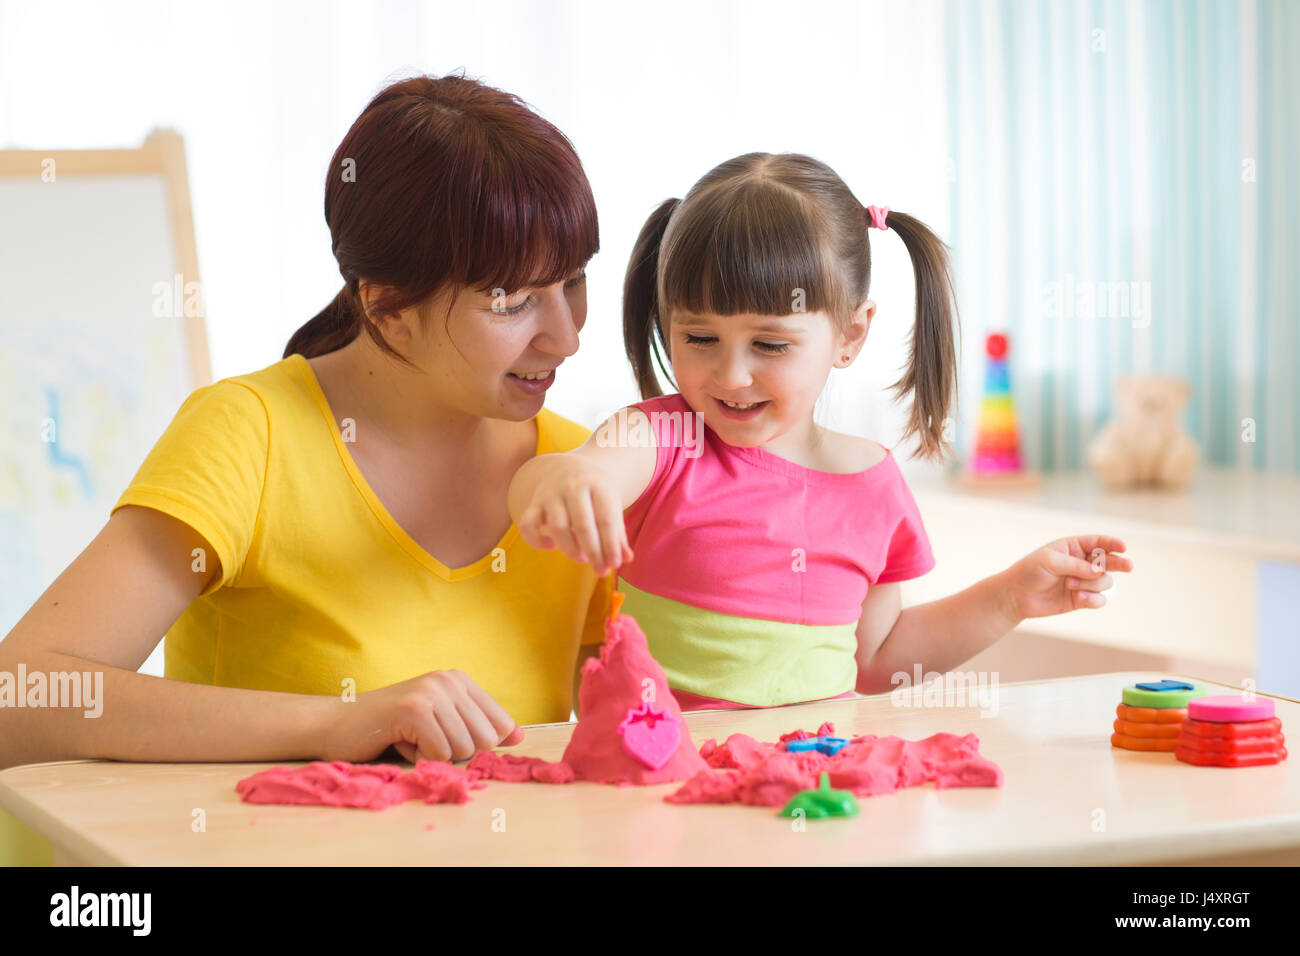 Child play with kinetic sand - Stock Image